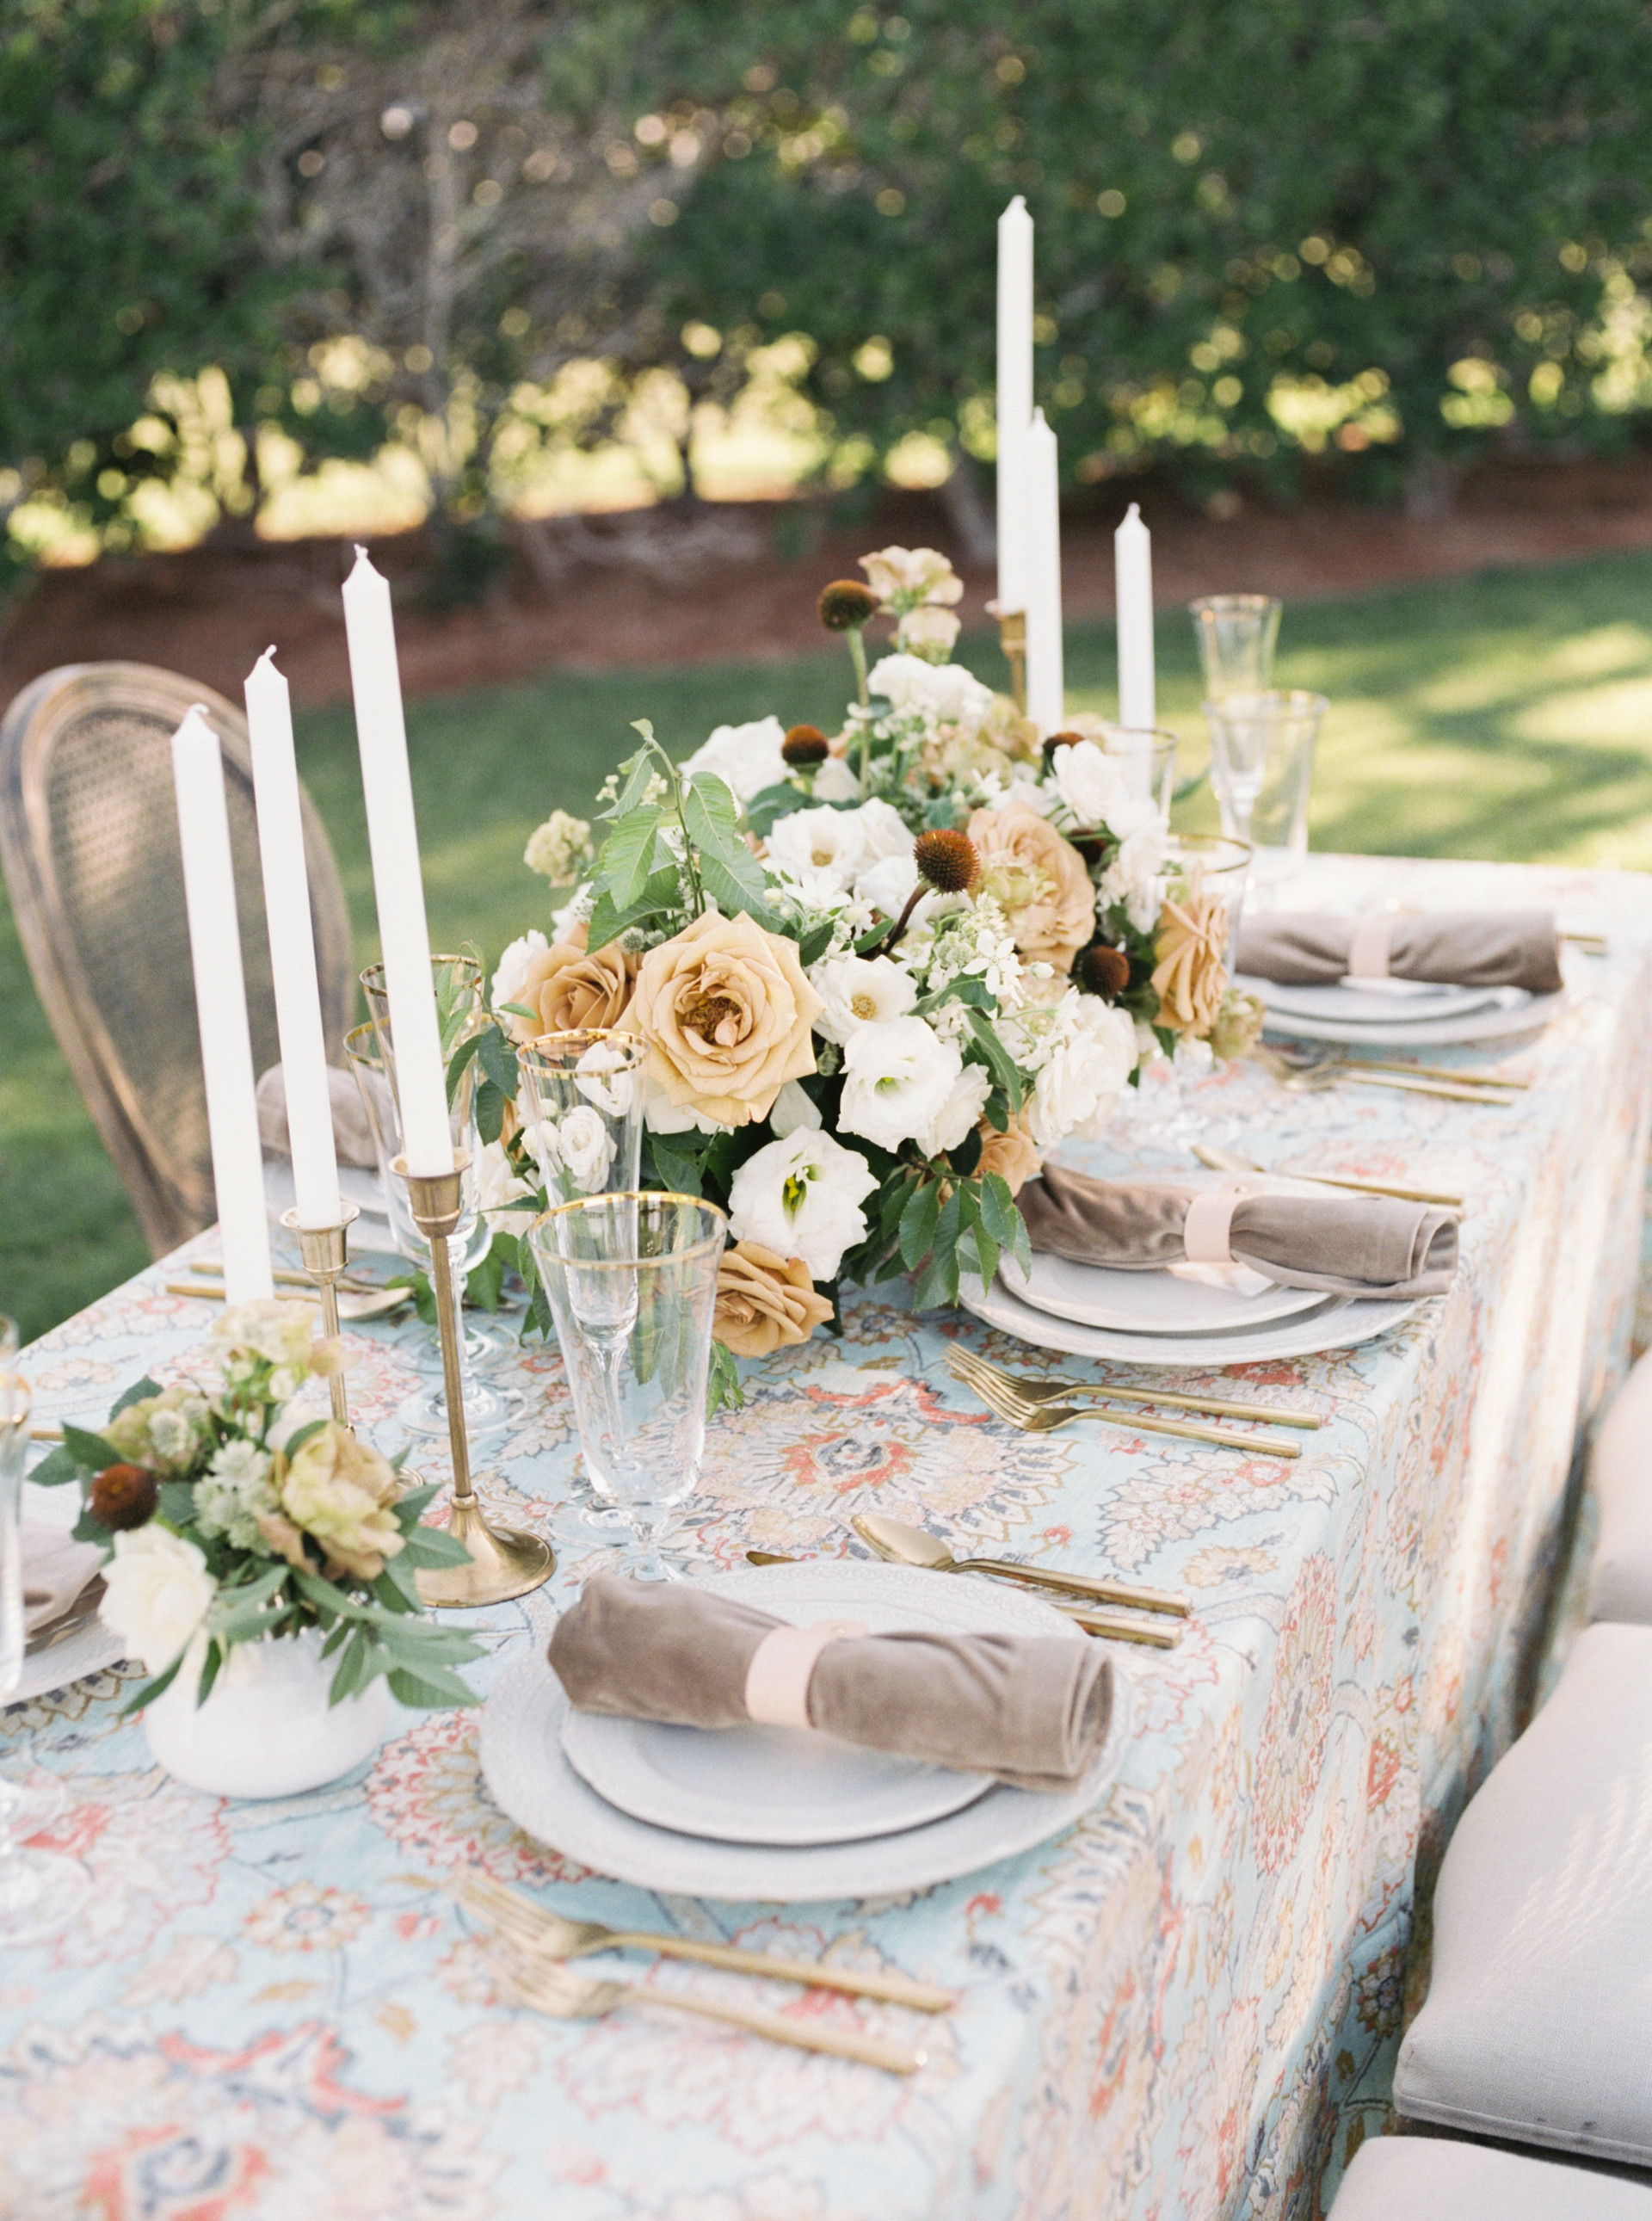 Whimsical summer tabletop details in shades of mustard and ivory. Photo: Lianna Marie